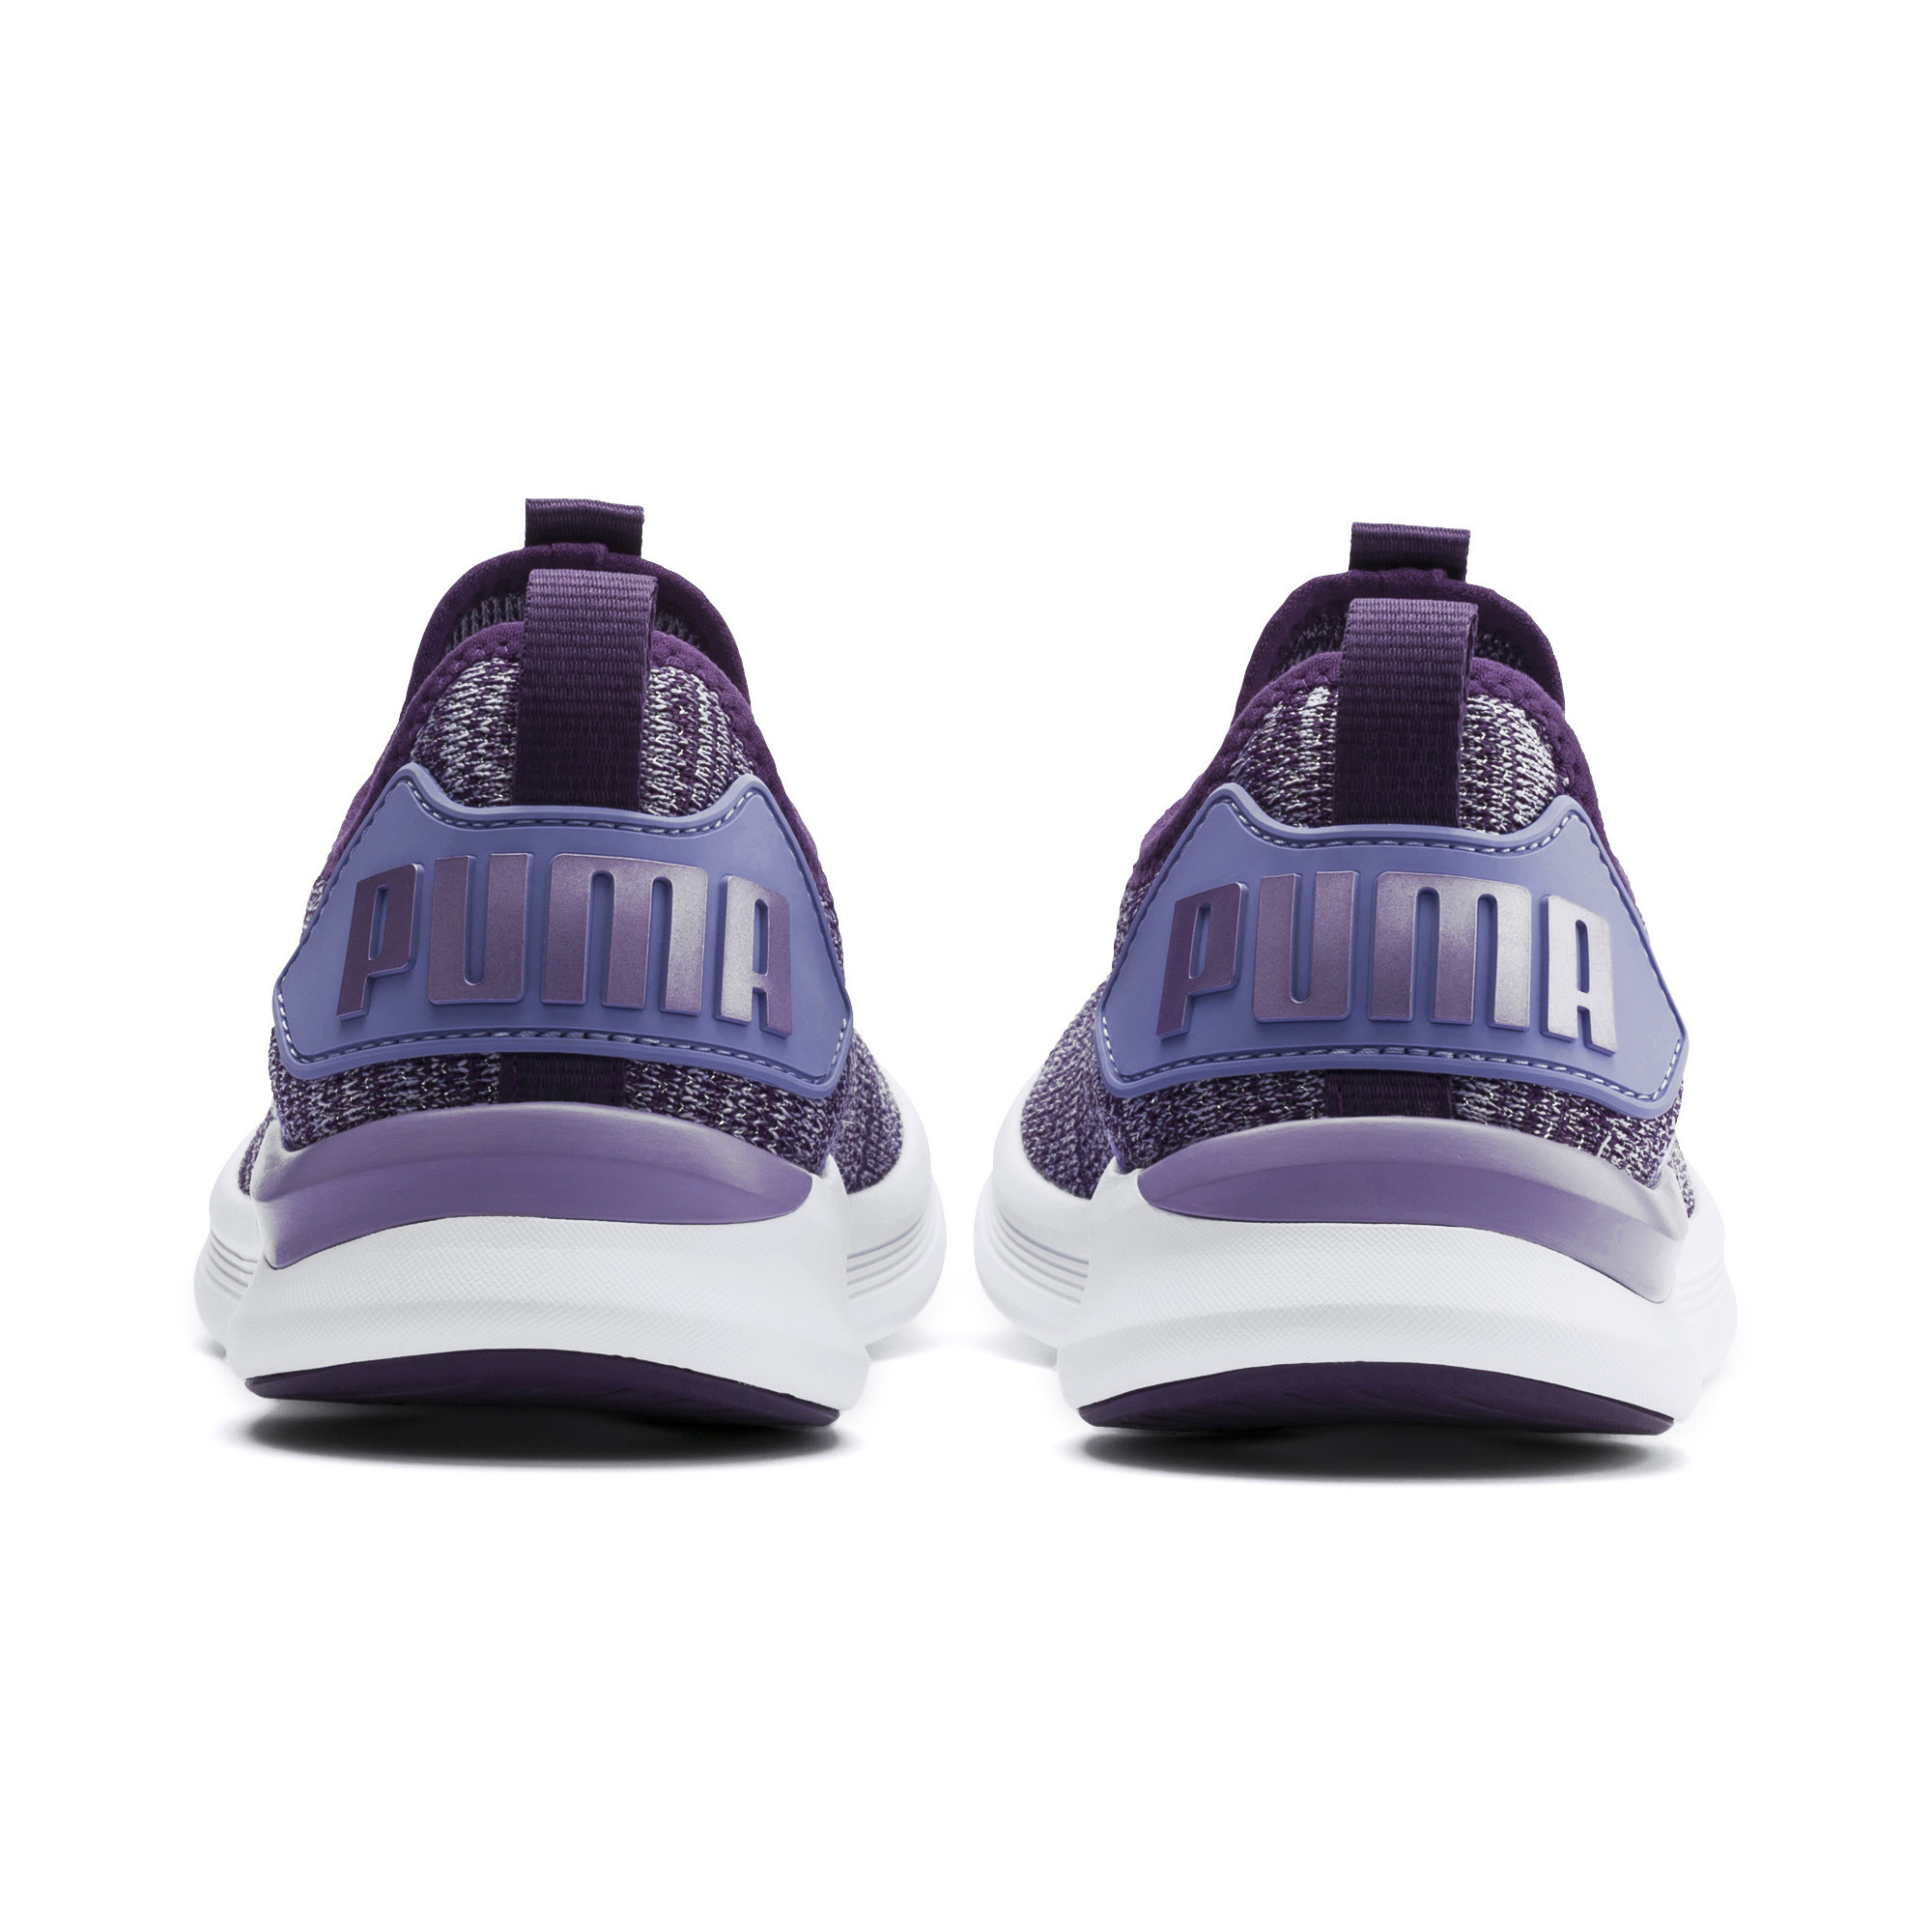 Image Puma IGNITE Flash evoKNIT Metallic Girls' Sneakers #3